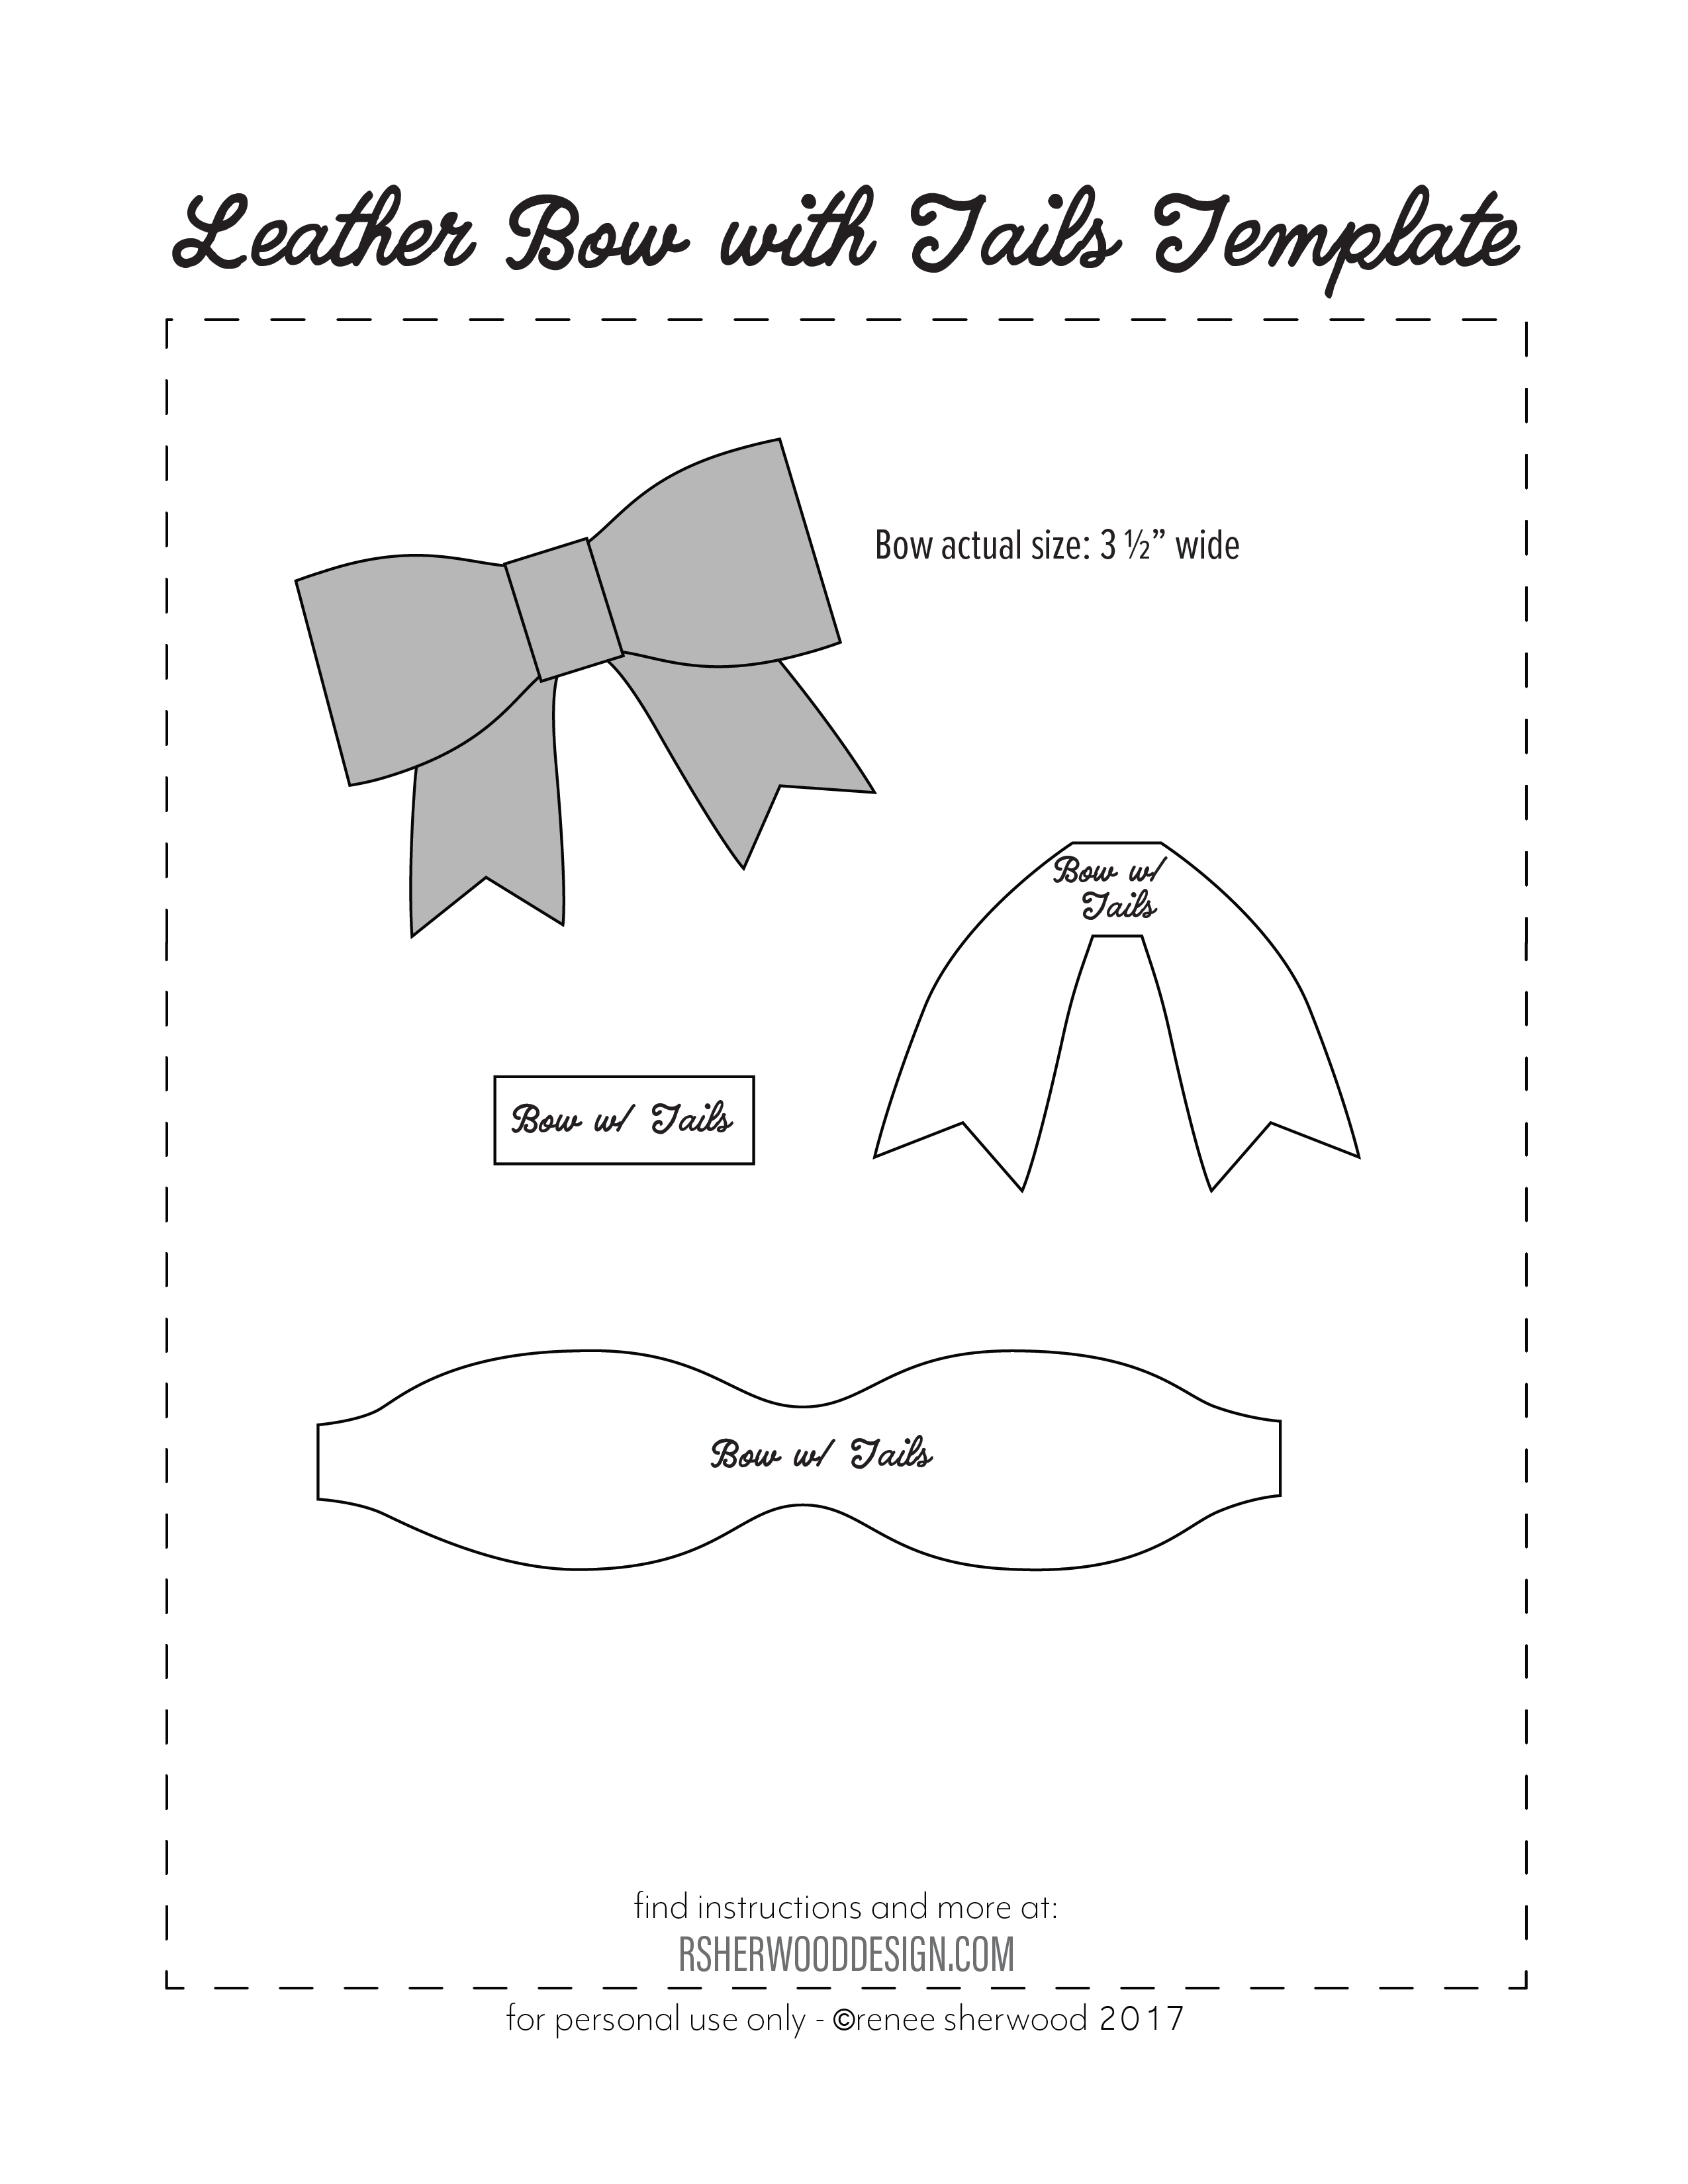 felt bow tie template - free no sew leather or felt bow template download at www